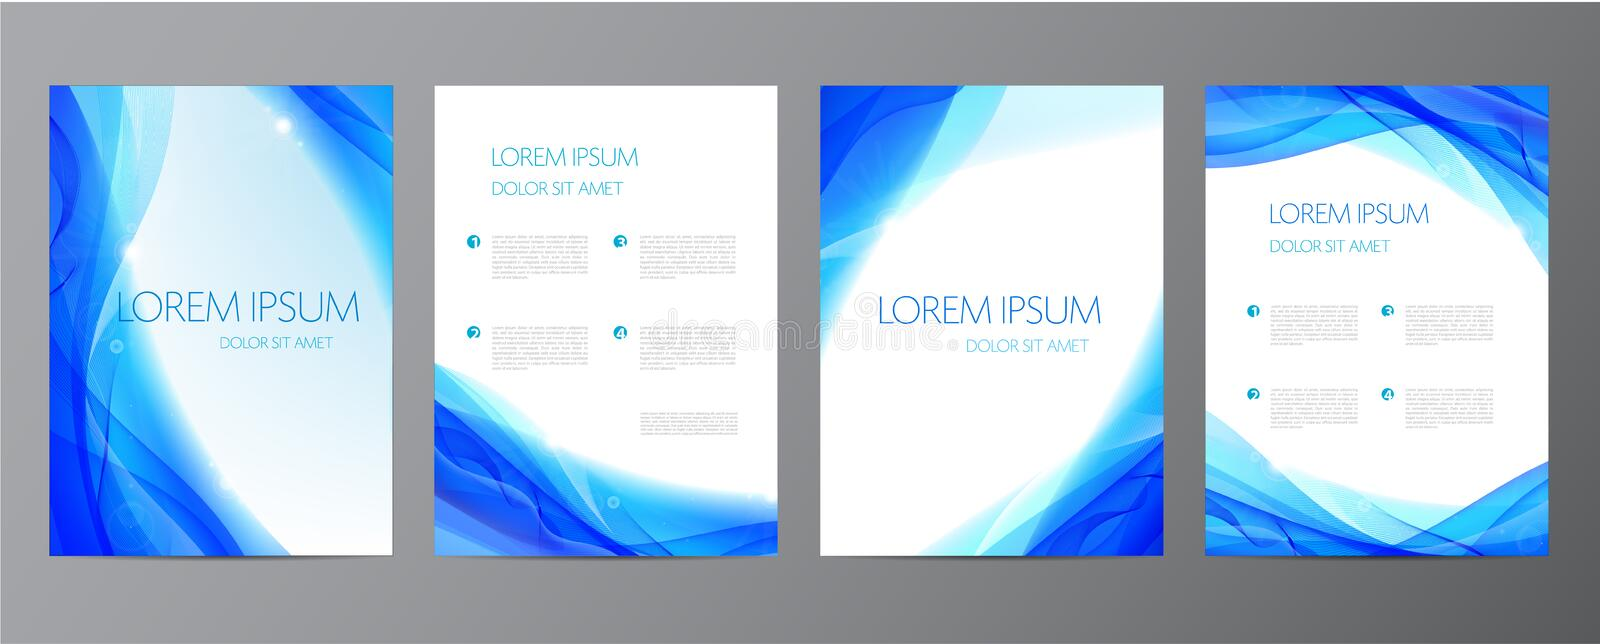 Vector set of abstract blue annual report templates, water covers, wavy background. Flyers, brochures royalty free illustration